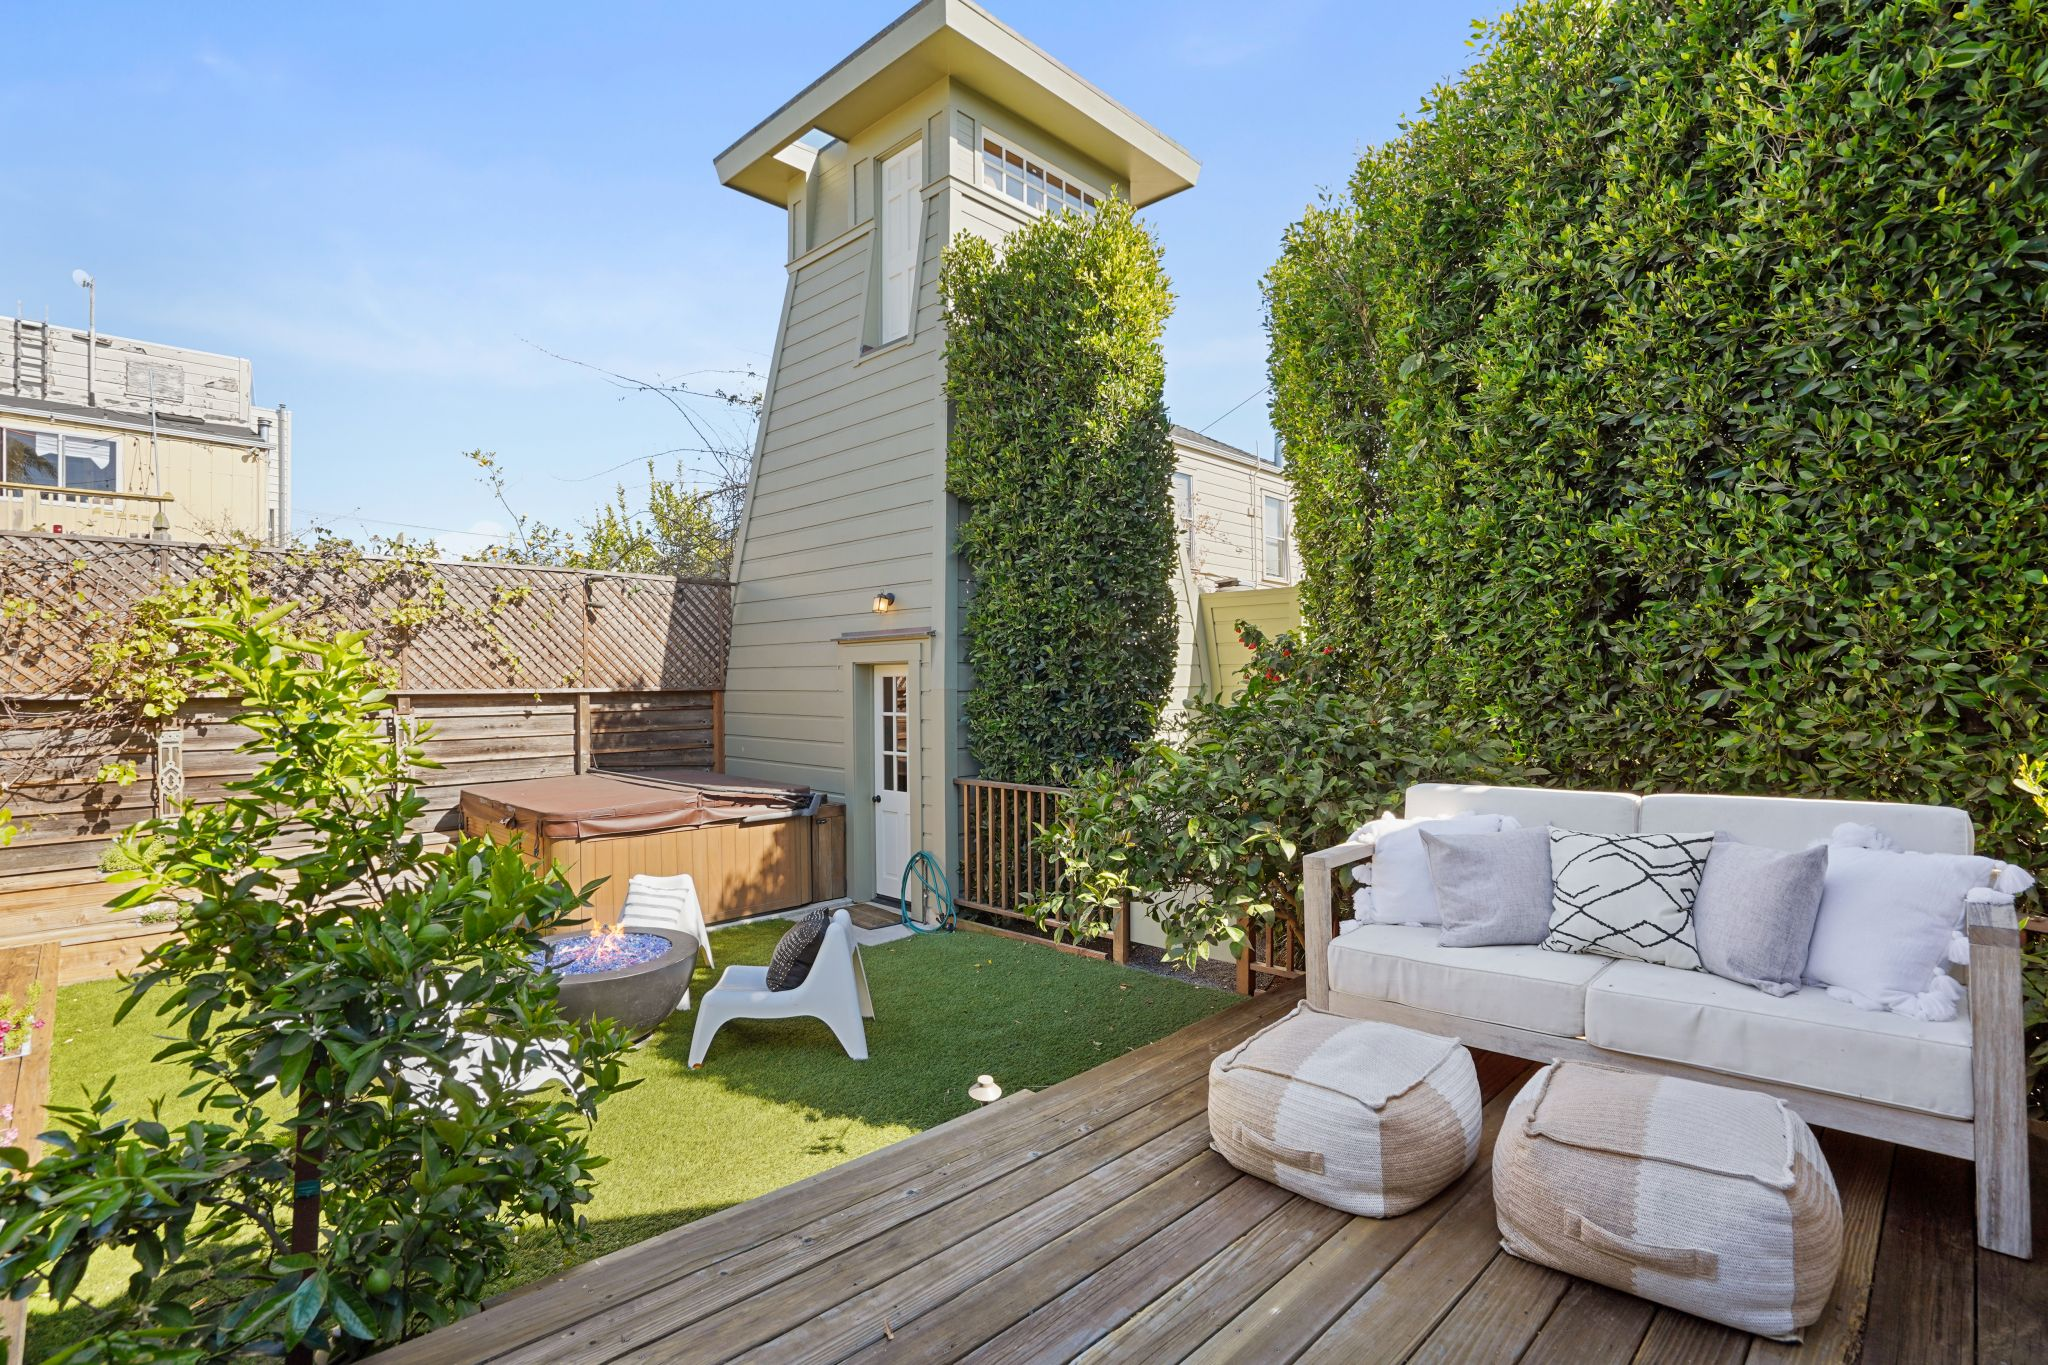 Outside you'll find a deck, lawn, and that water tower, all waiting to be explored.